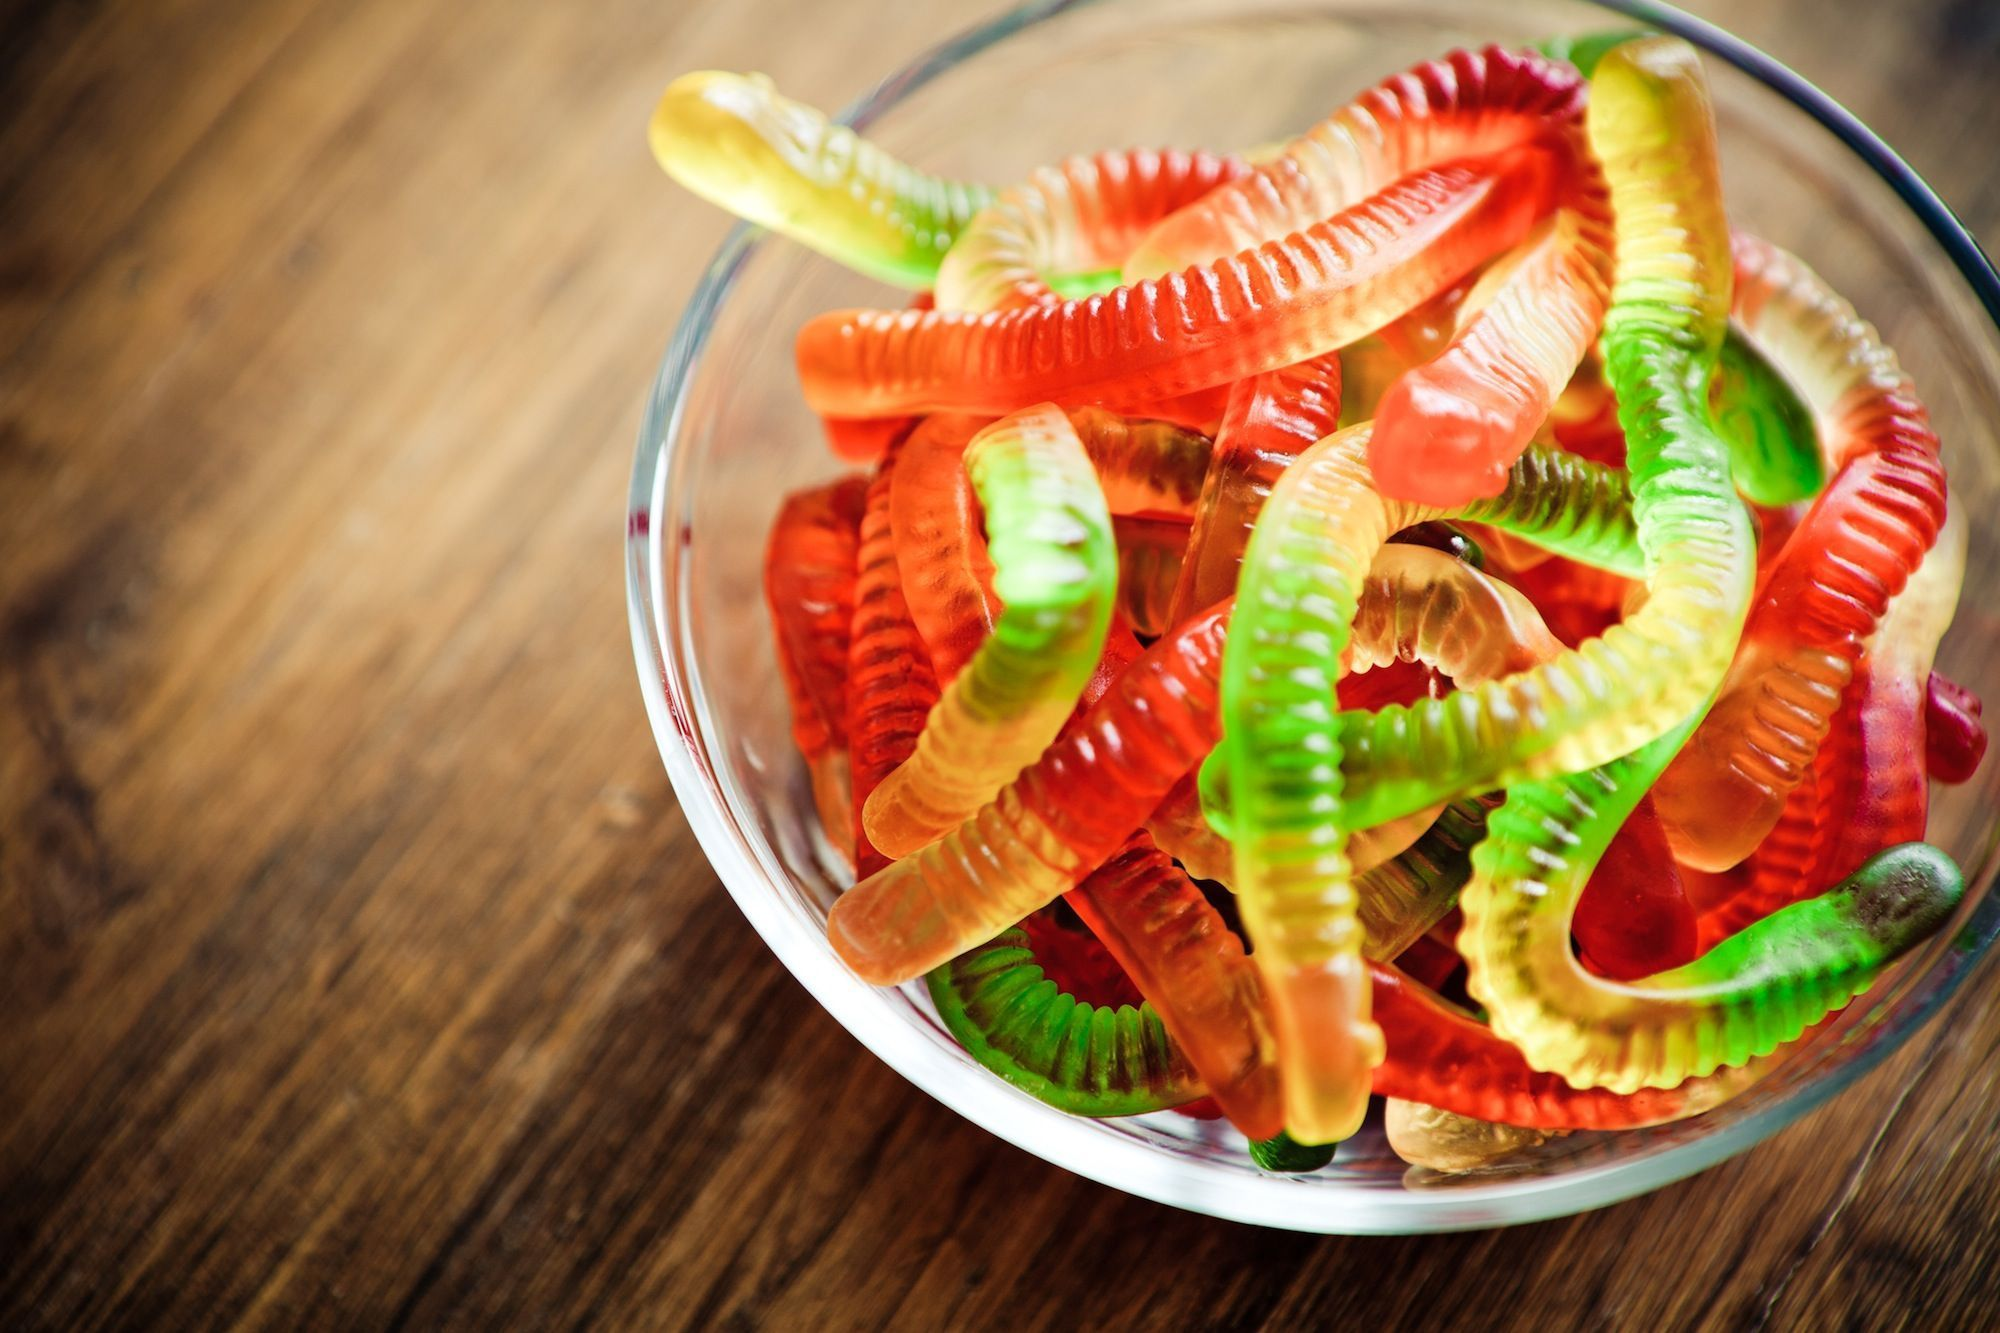 Turn Gummy Worms Into Frankenworms For Mad Science